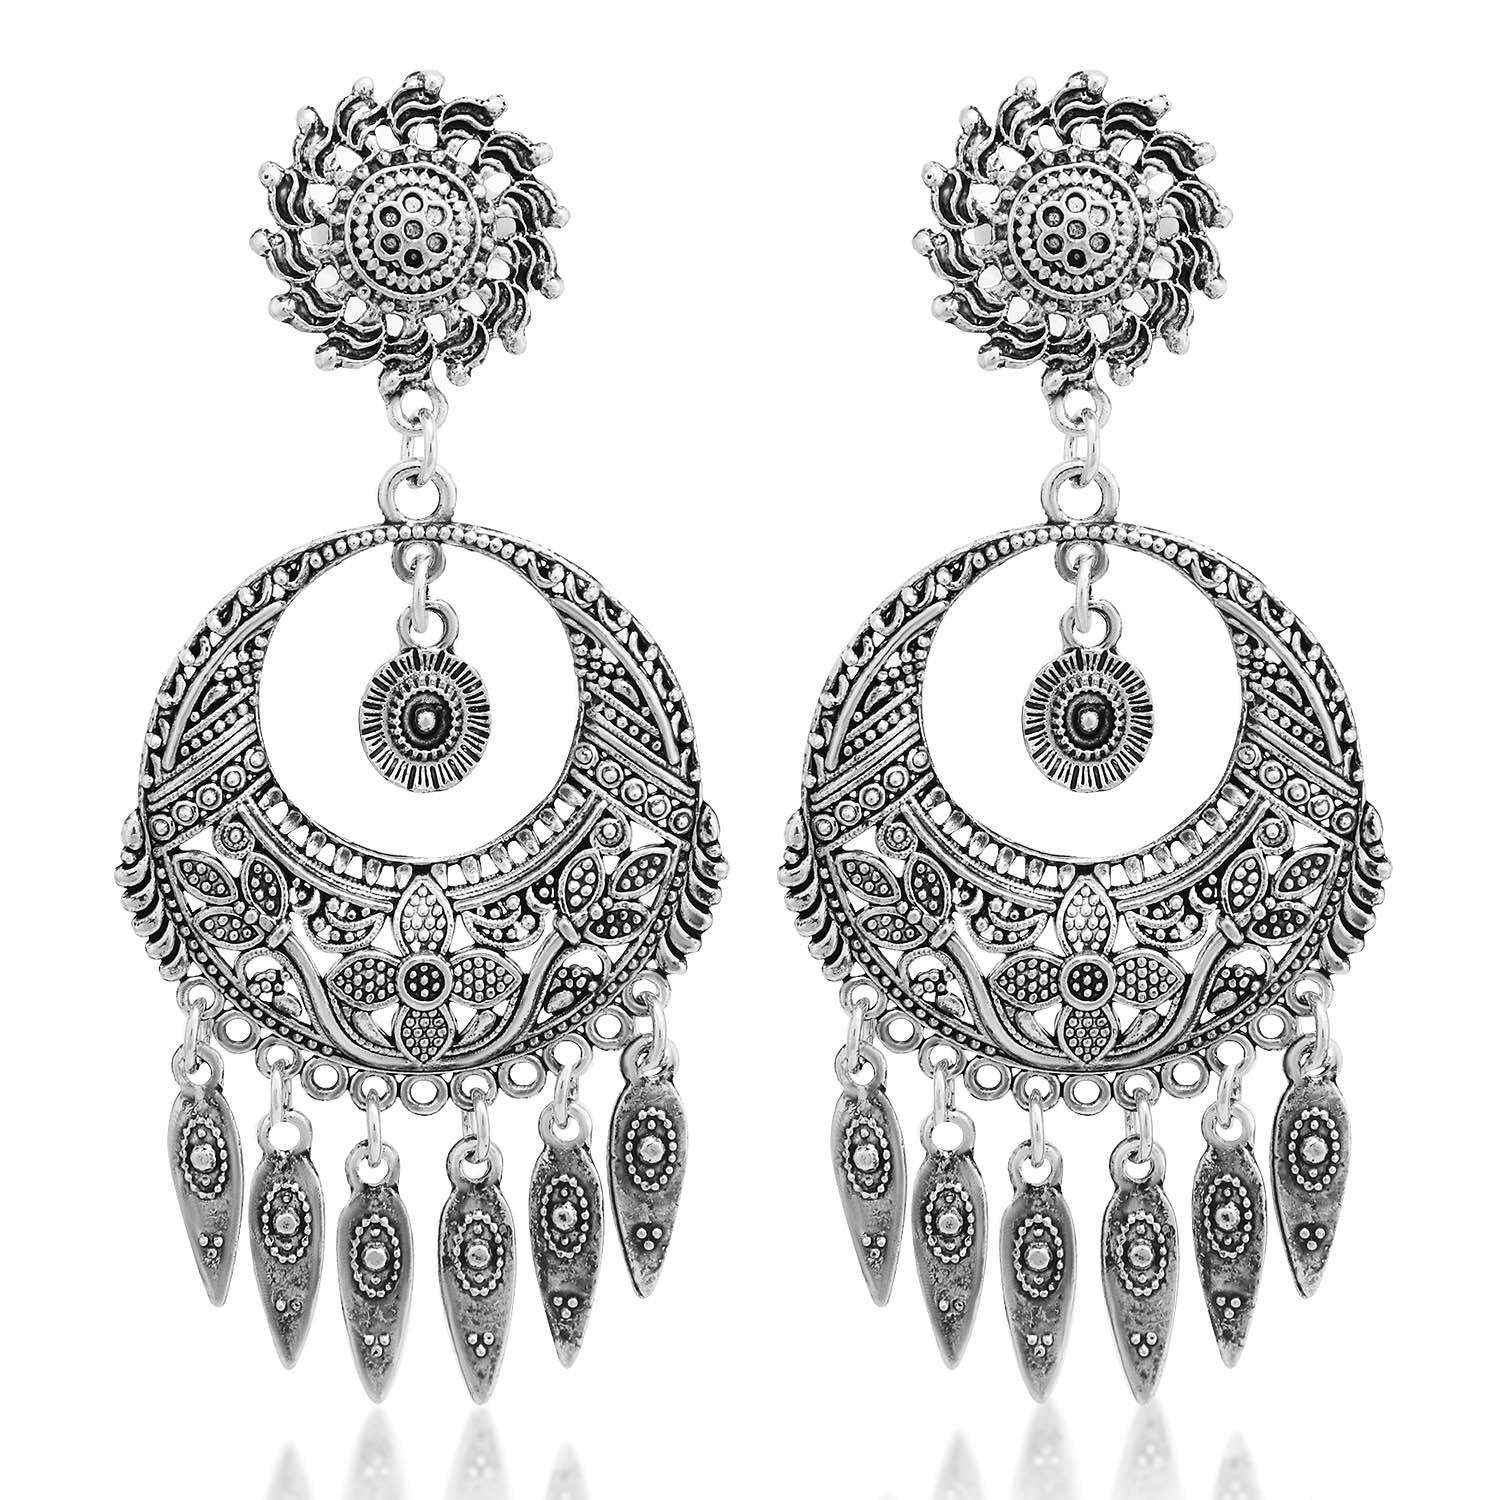 Sukkhi Glamorous Oxidised Floral Chandbali Earring For Women-SUKKHI1-Earring